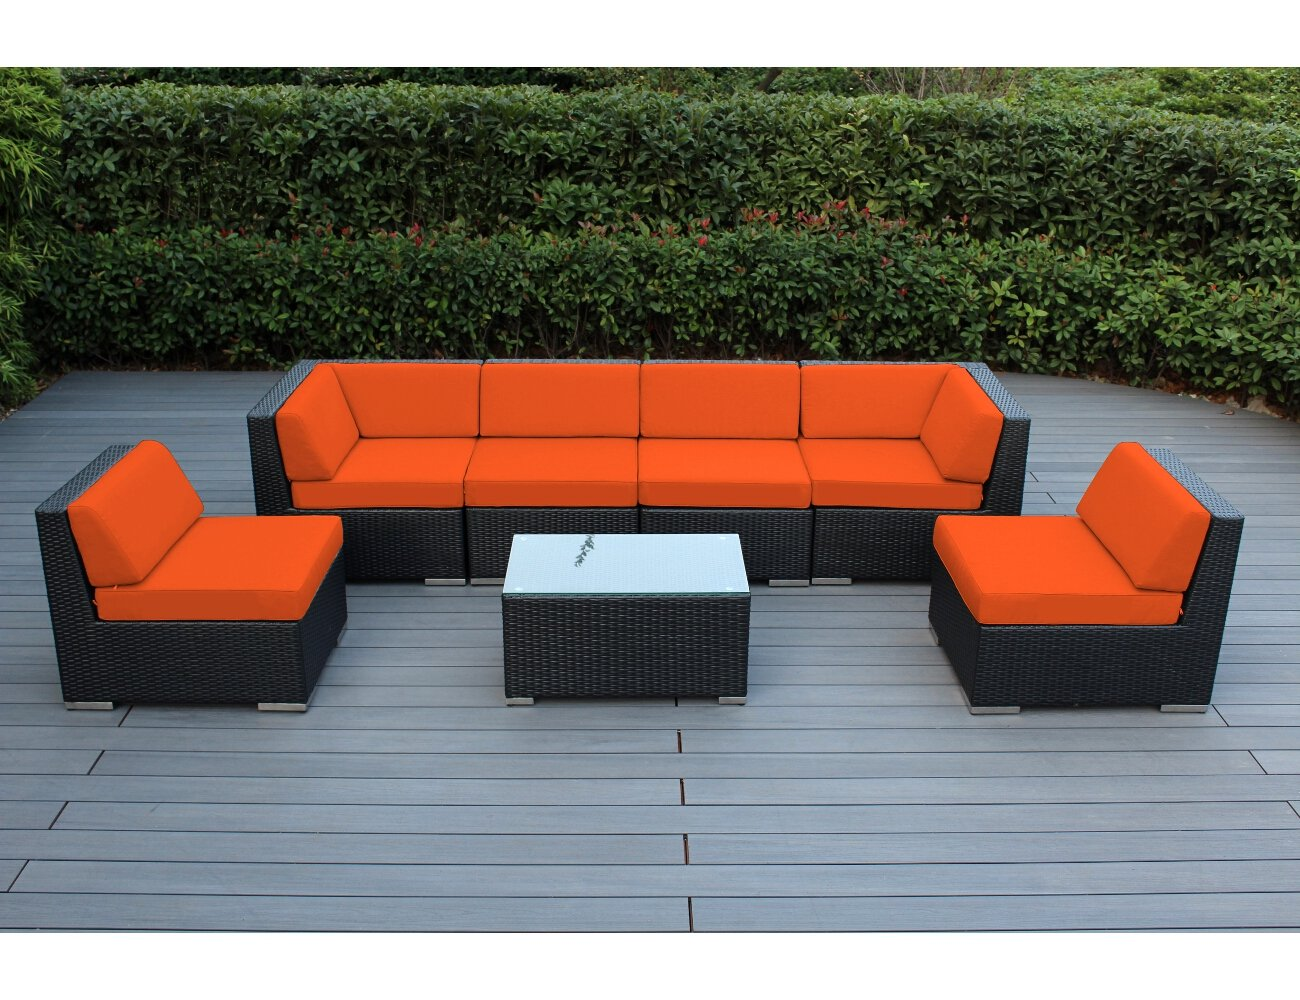 Best Luxury Outdoor Furniture Sets Modern Patio Furniture Garden